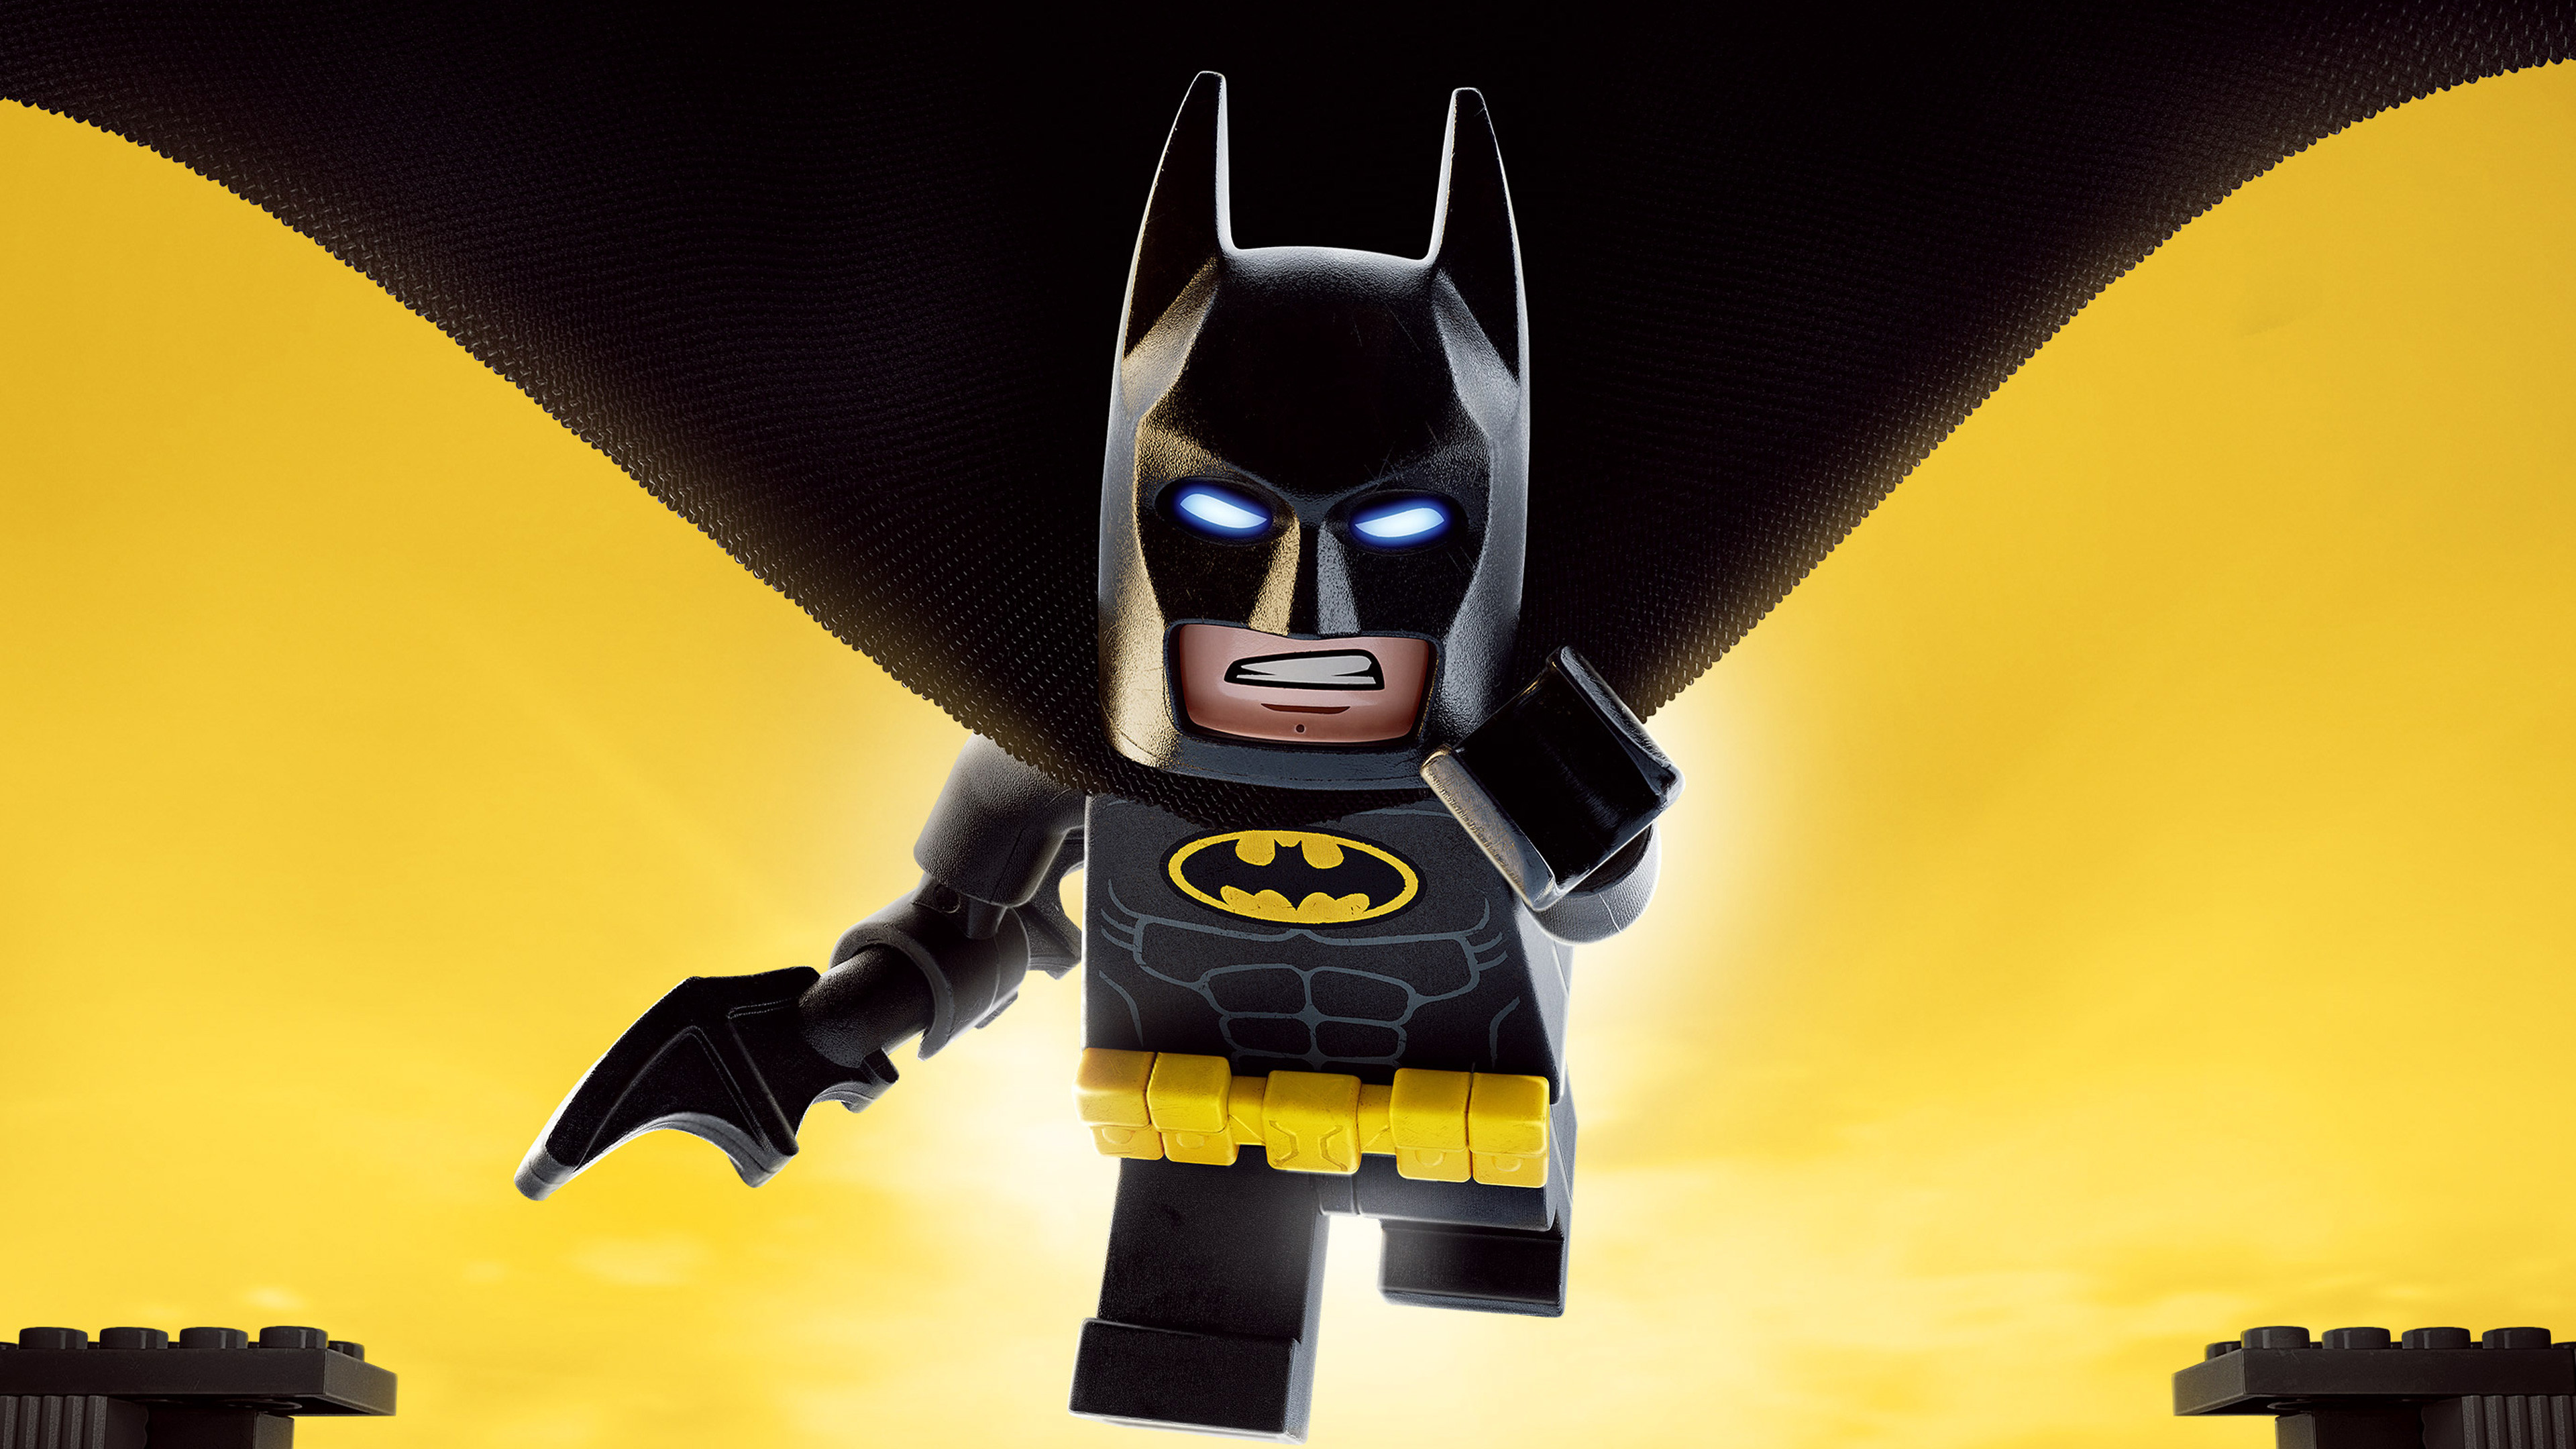 3840x2160 The Lego Batman Movie 4K 2017